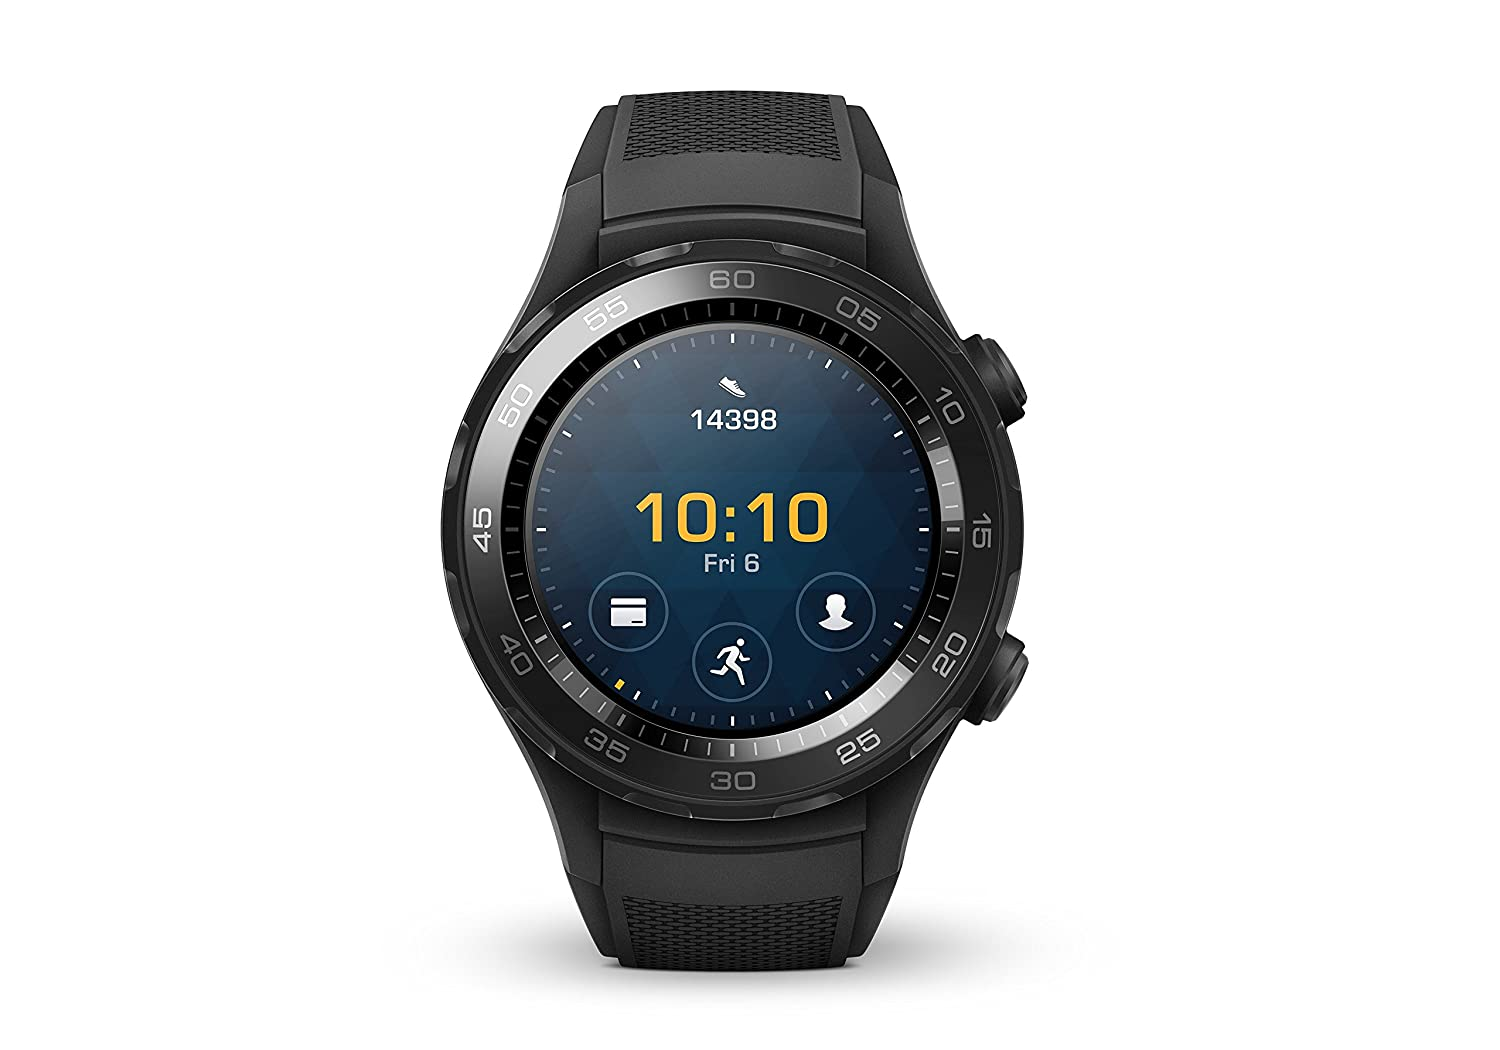 [amazon.it] Huawei Watch 2 Smartwatch Carbon Black WiFi za 150€